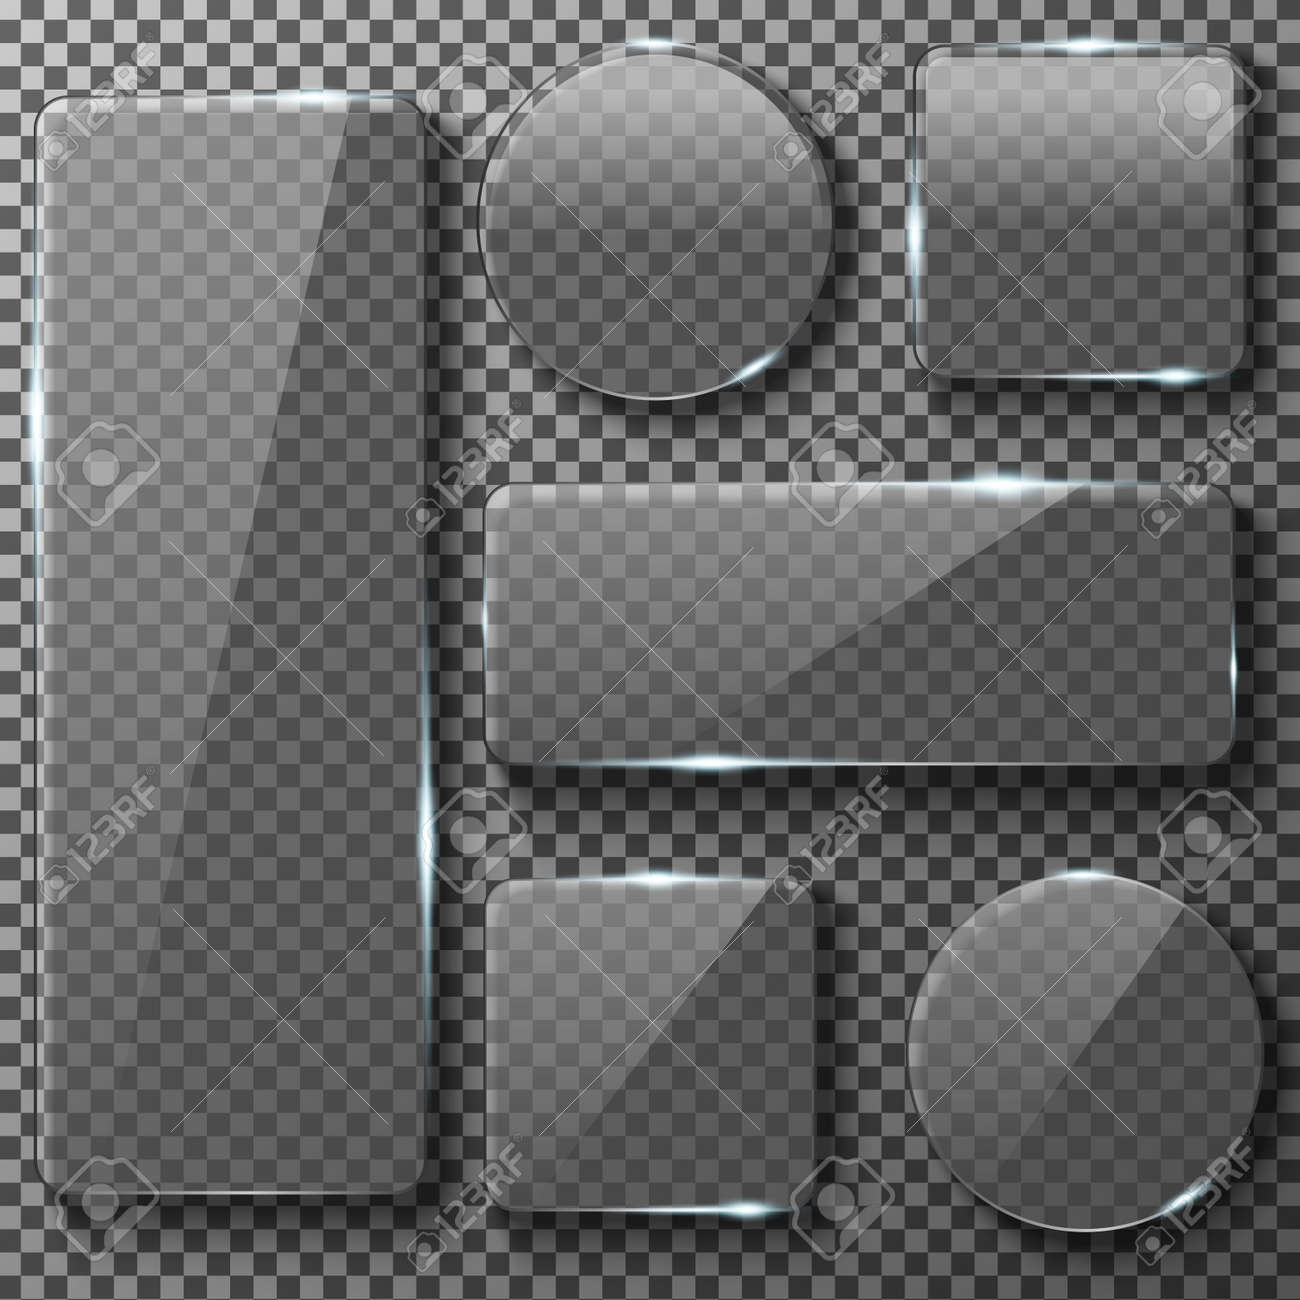 Transparent glass plates of different shapes. Square, circle, rectangular app buttons on checkered background. Blank empty, shiny and glossy. Vector illustration icons set. - 60000173